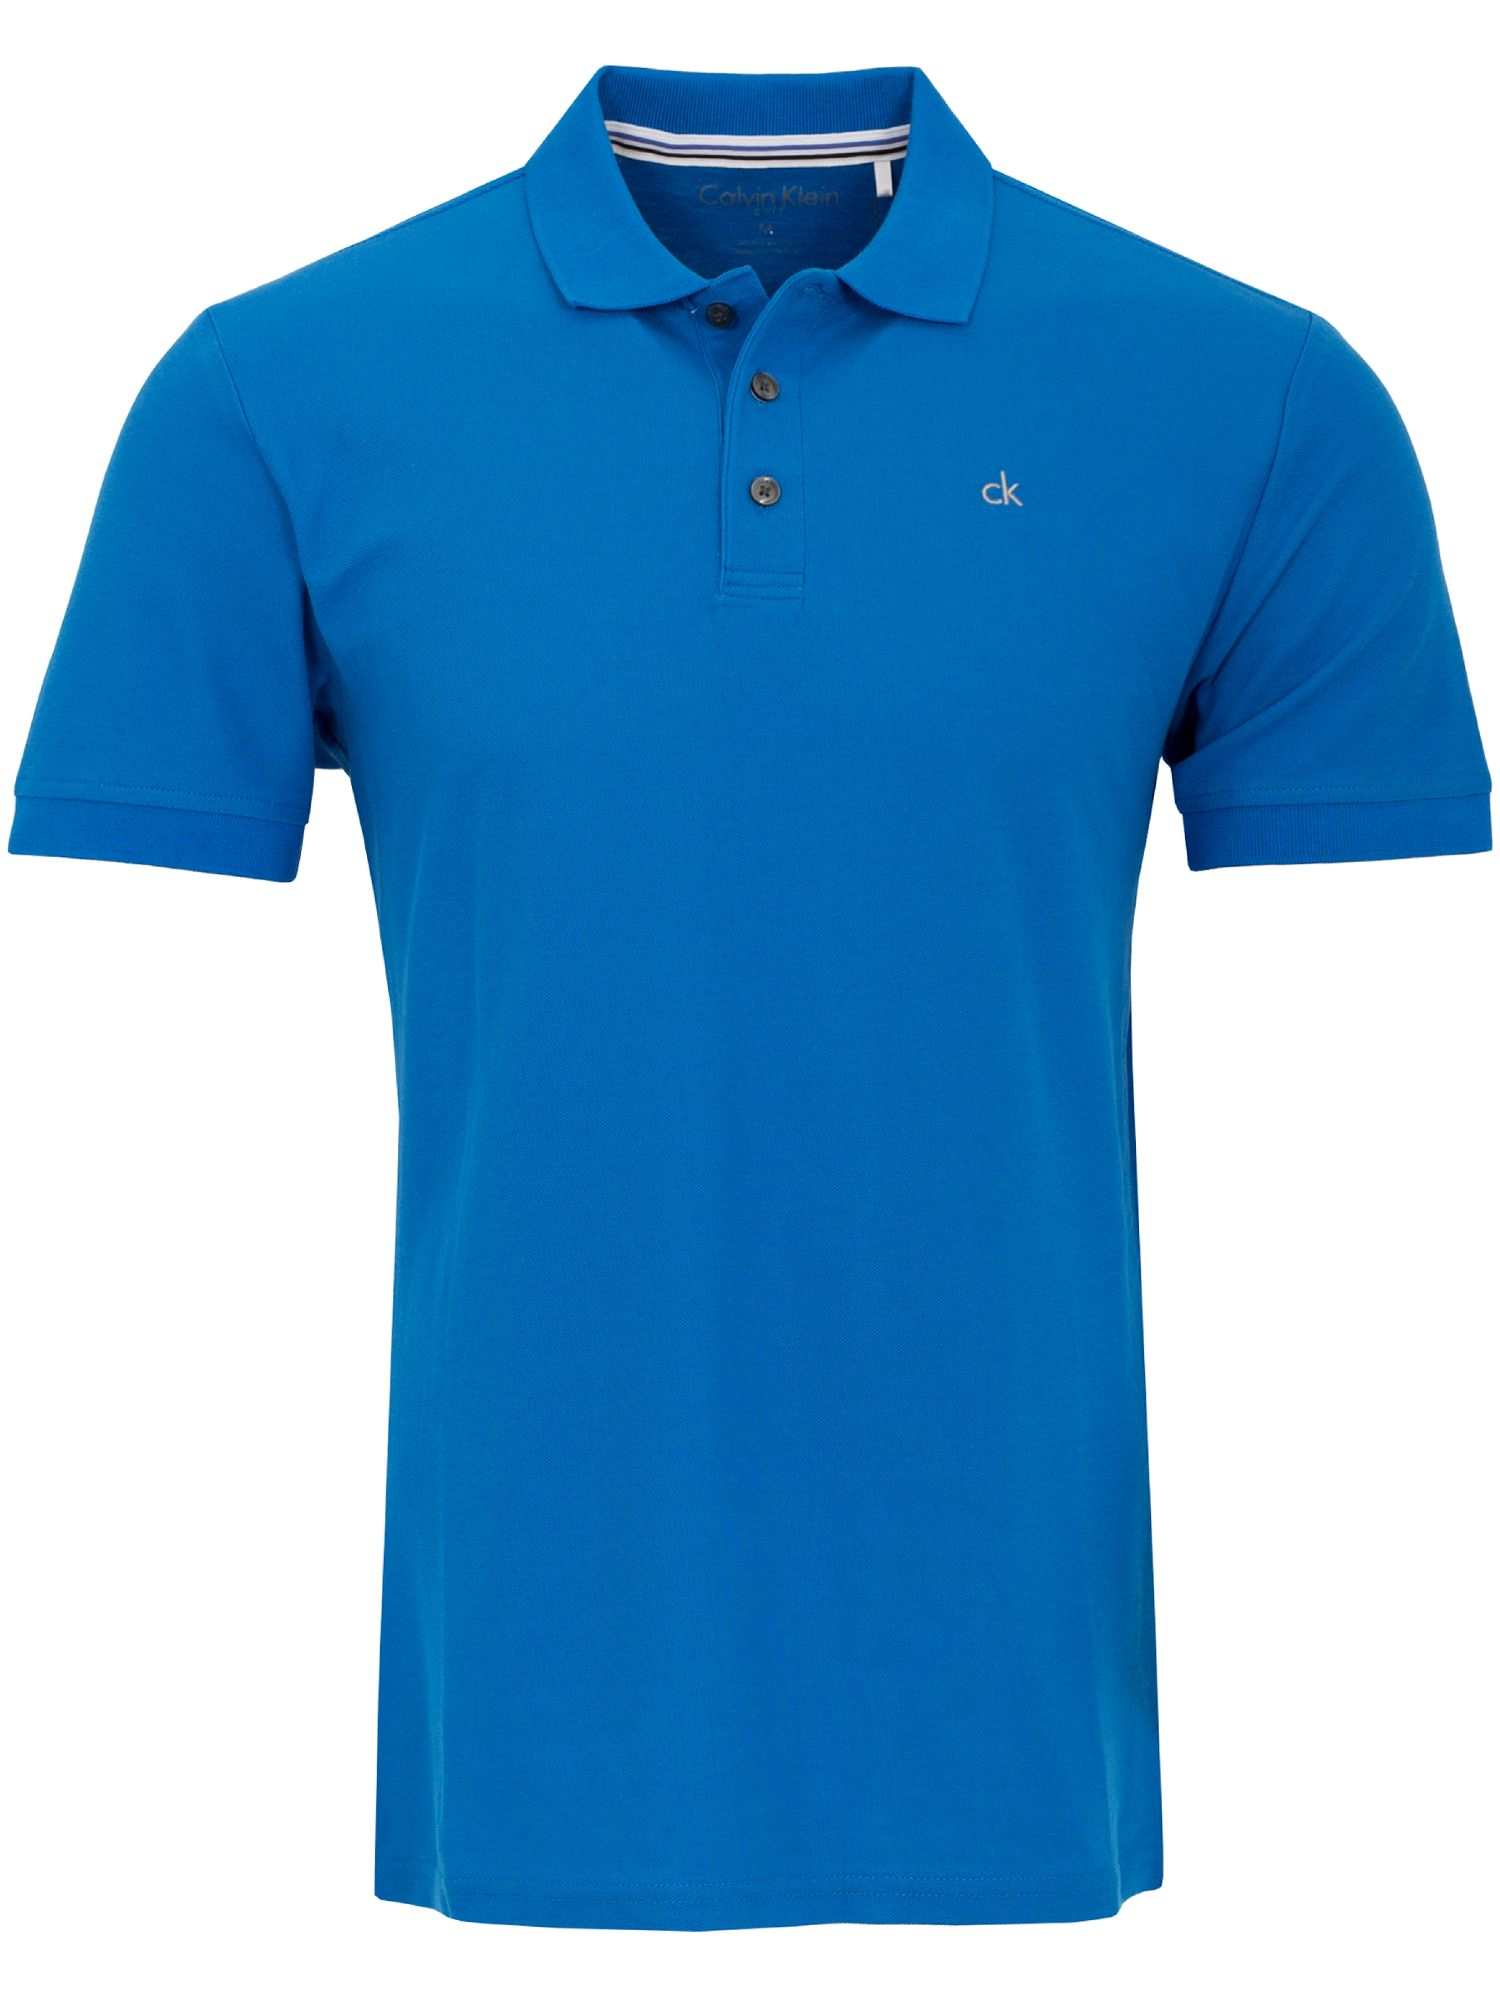 Men's Calvin Klein Golf Midtown Radical Cotton Polo, Blue